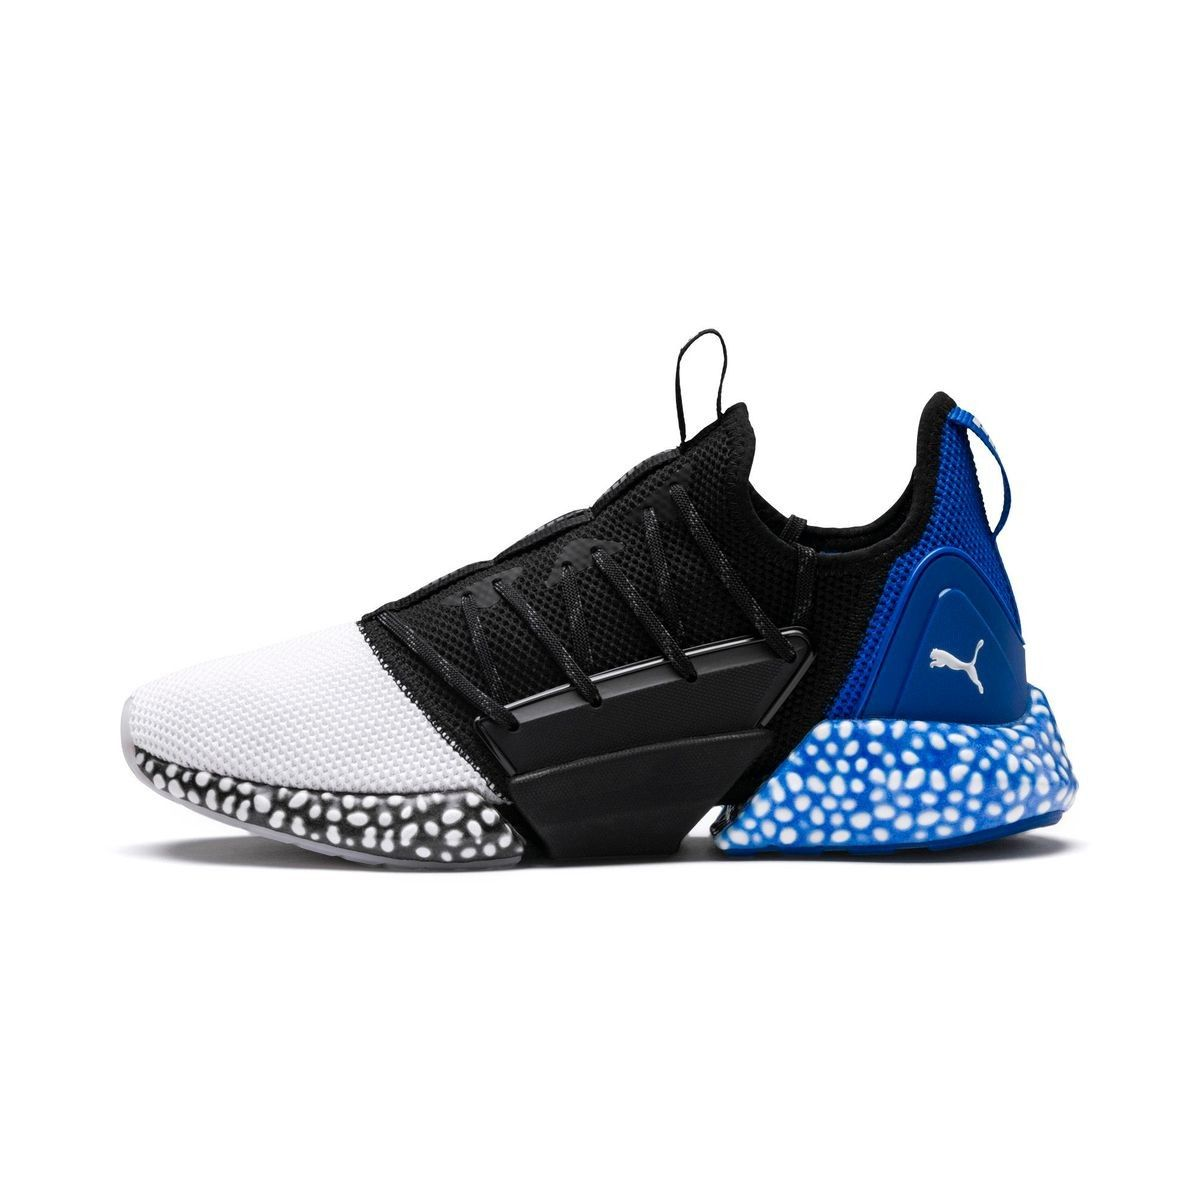 sneakers for cheap half price exclusive range Chaussure De Course Hybrid Rocket Runner Pour Homme - Taille ...